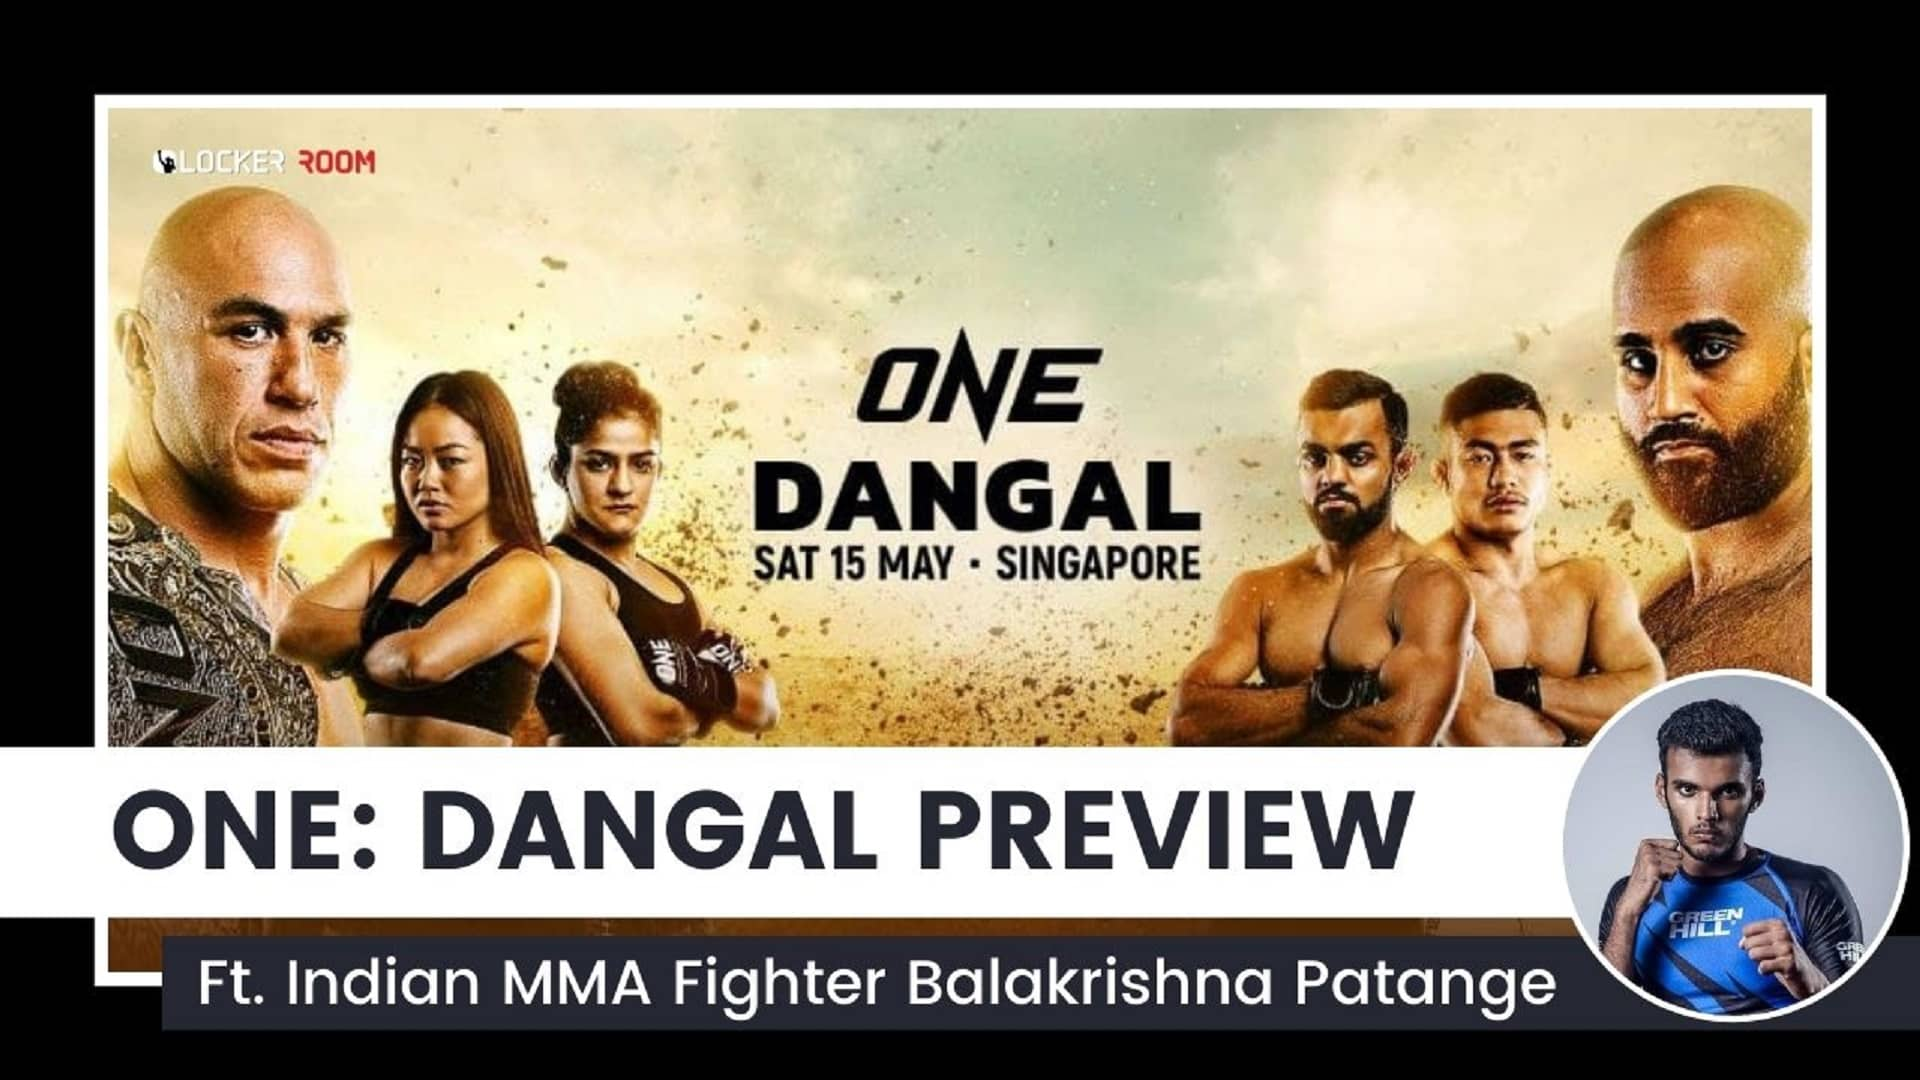 ONE-Dangal-Preview-Breakdown-India-Time